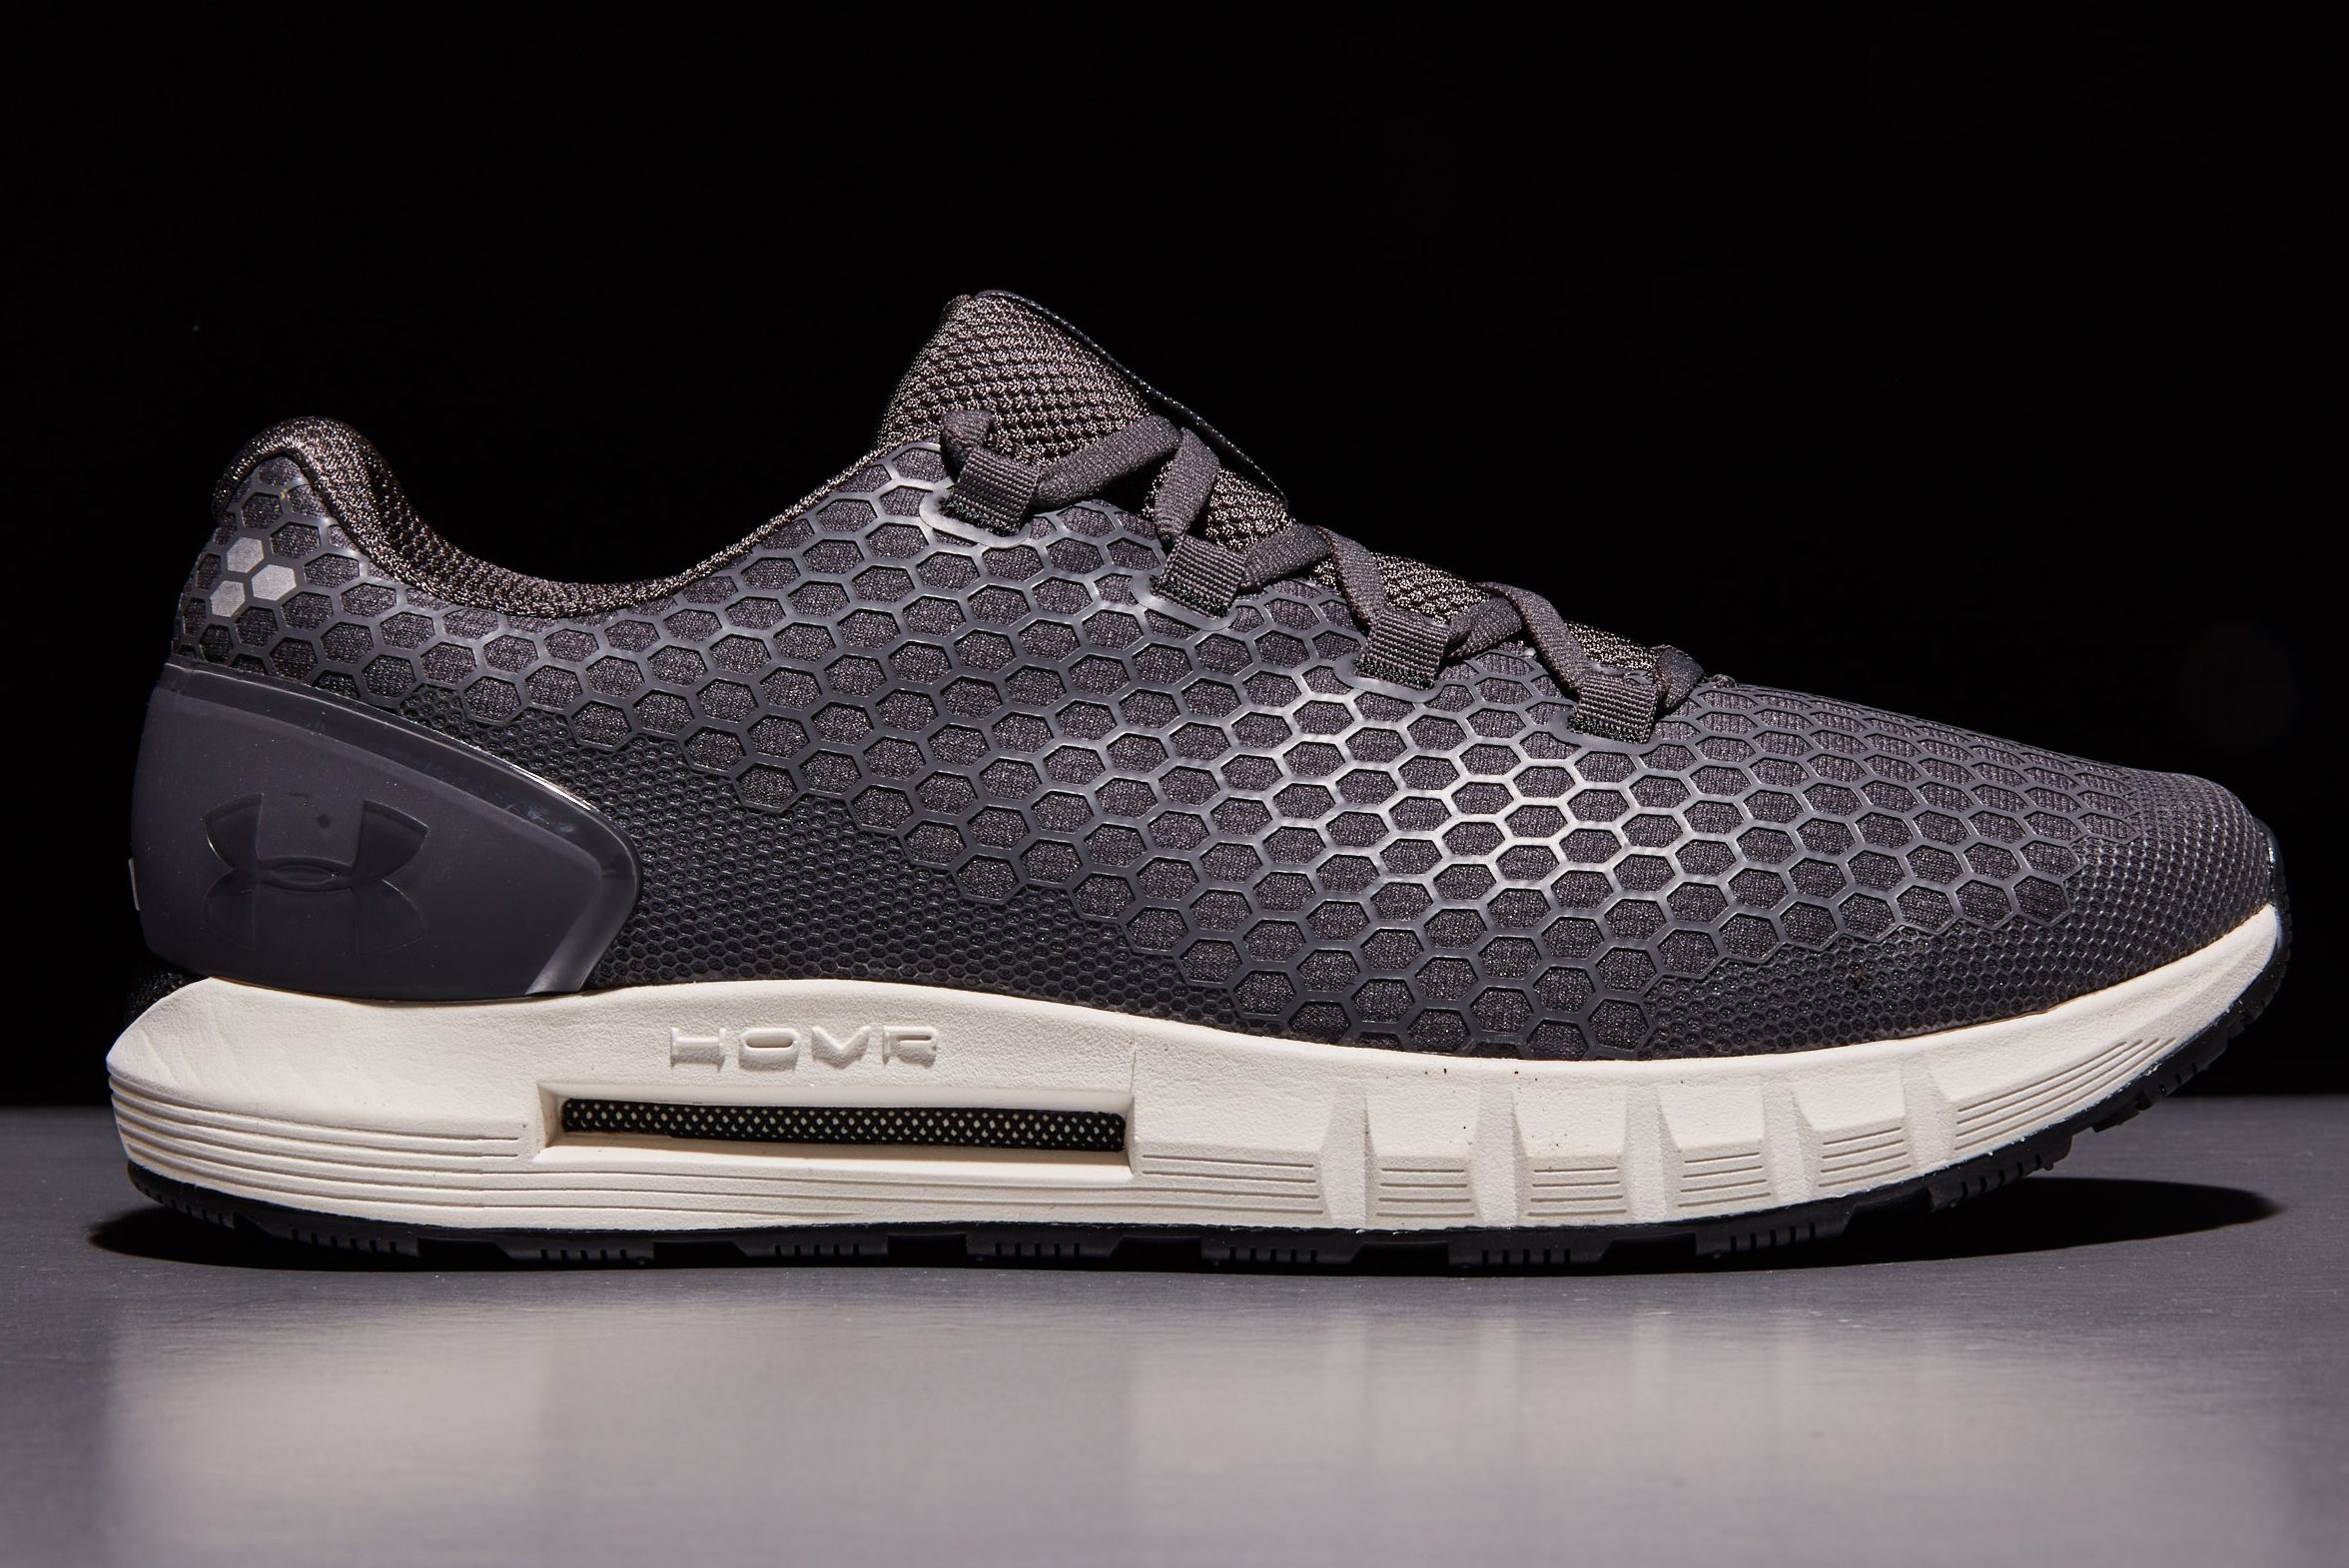 Under Armour Hovr Reactor